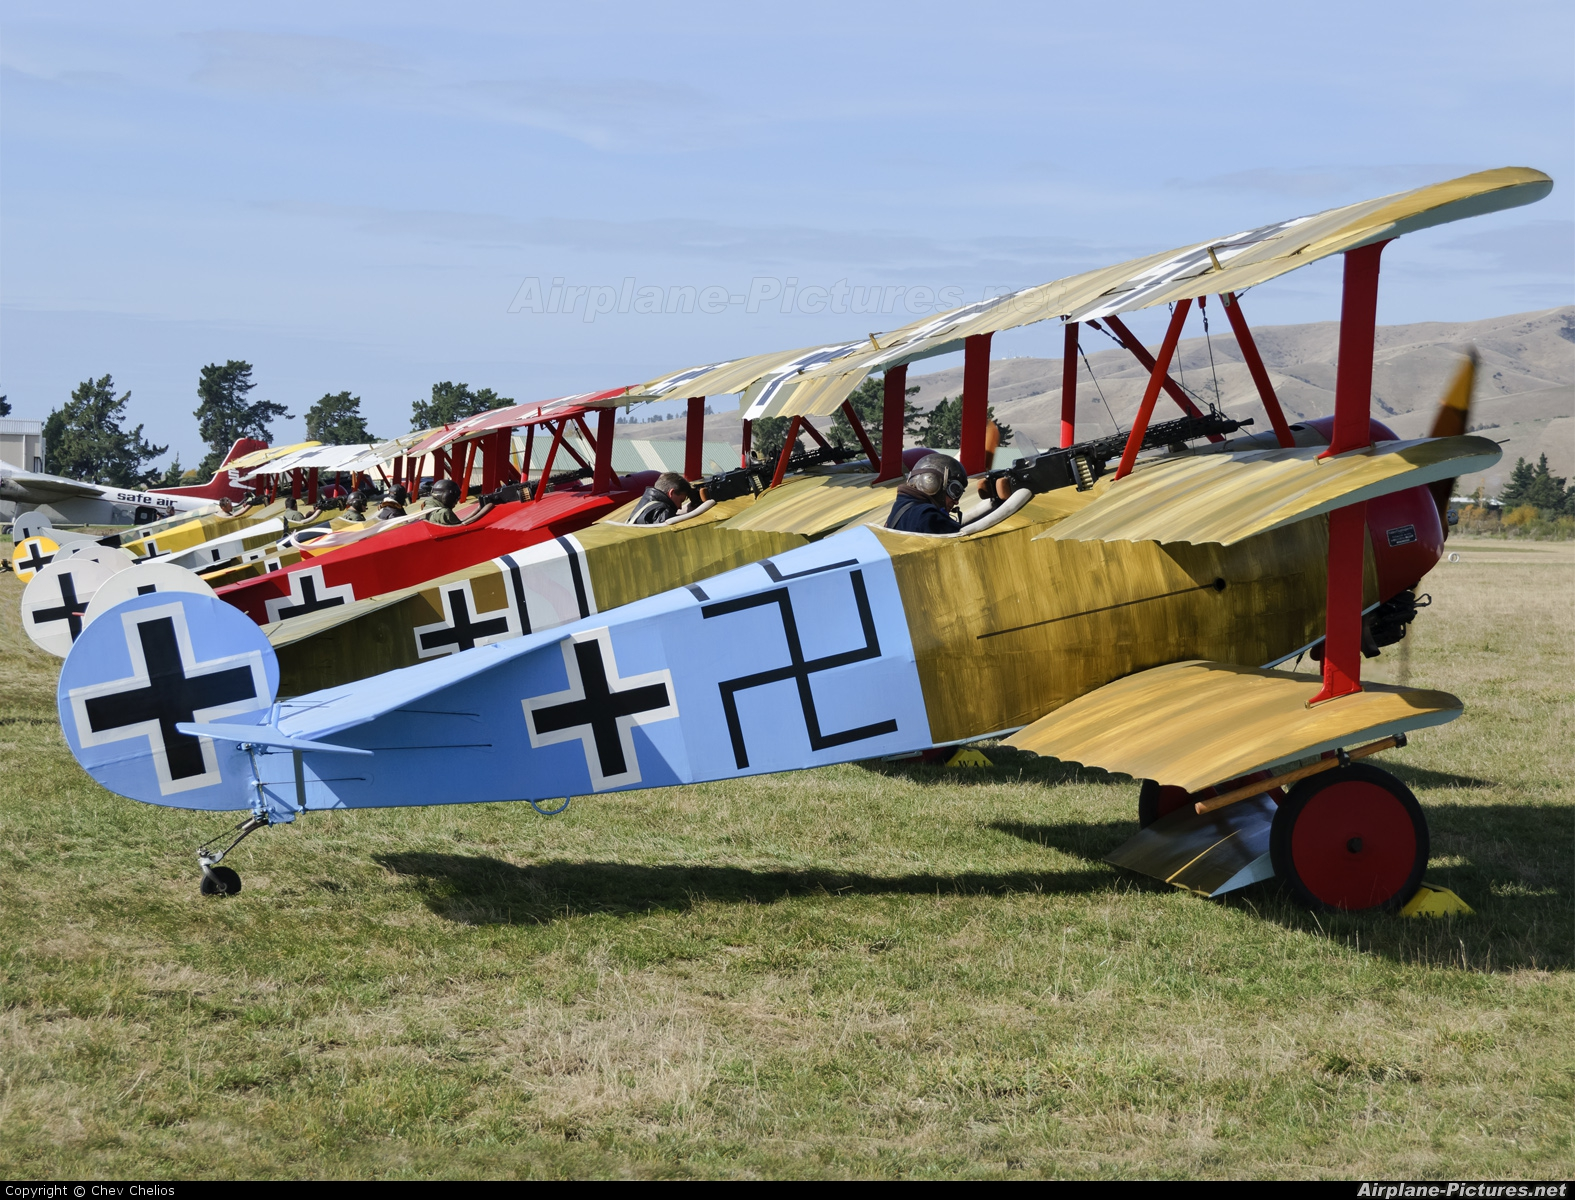 The Vintage Aviator Limited ZK-FOK aircraft at Omaka